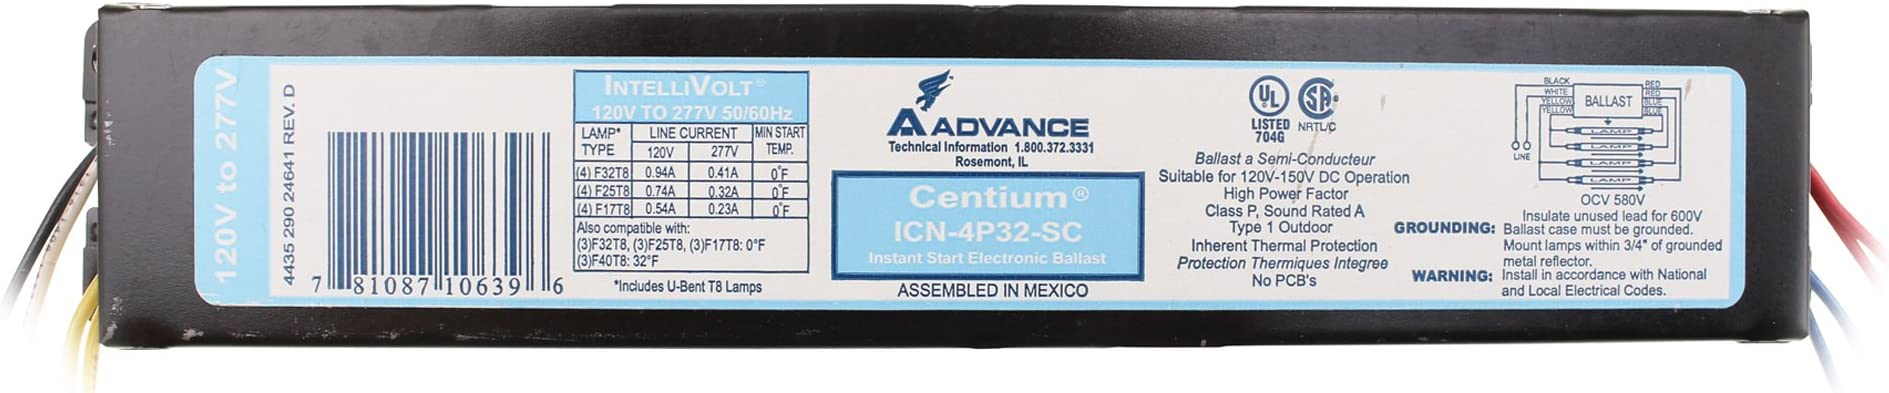 Advance ICN-4P32-SC Ballasts Electronic Fluorescent Ballast Lamp NEW 32W T8